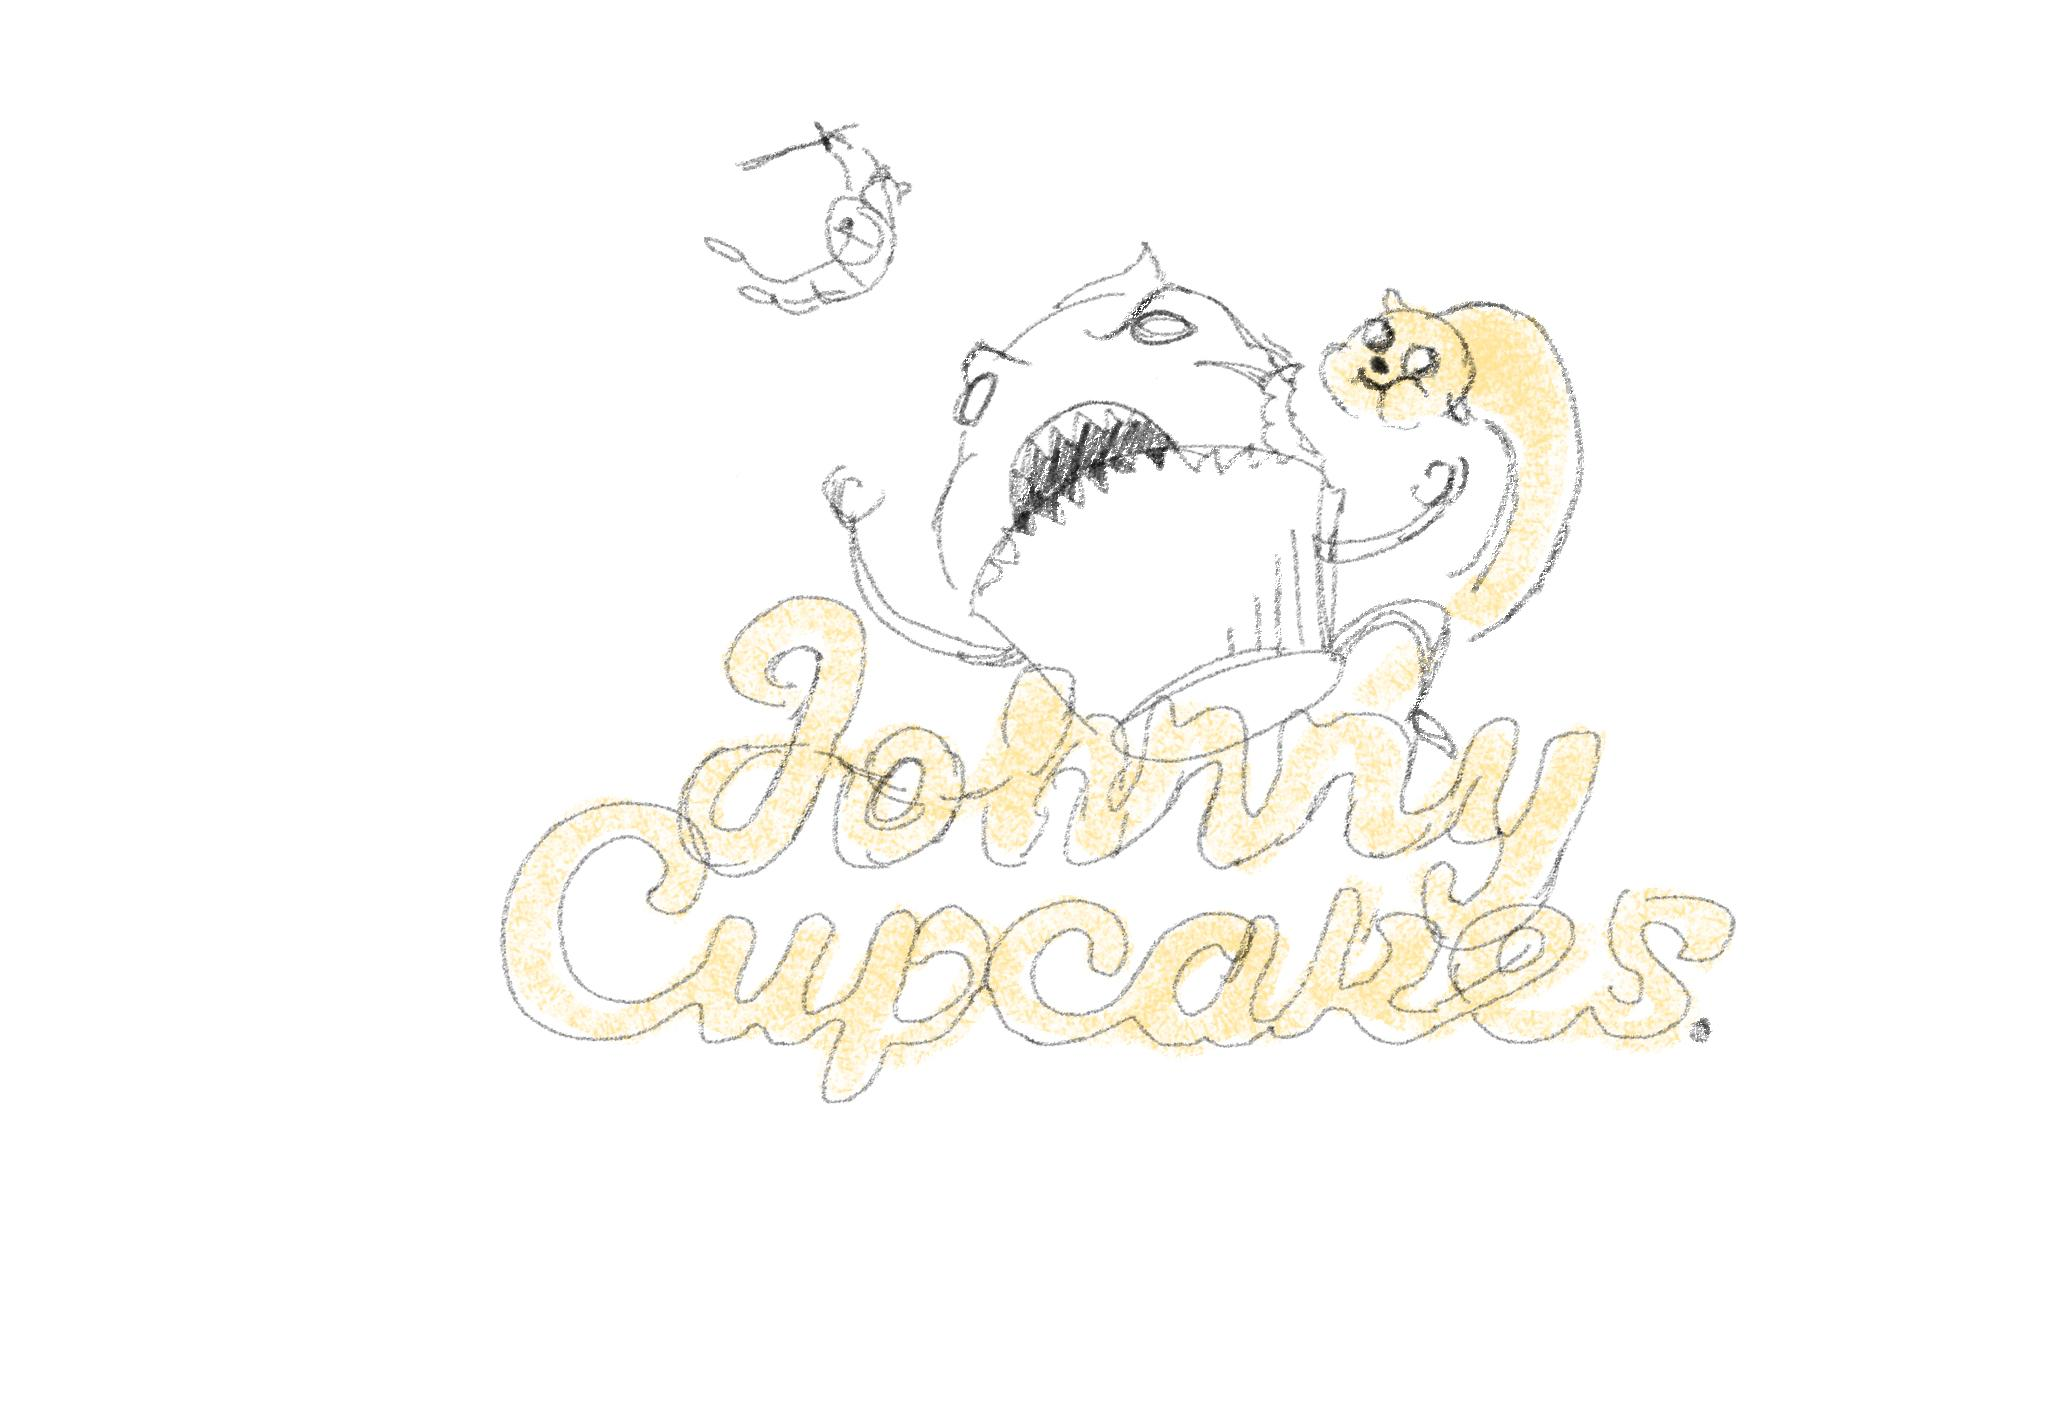 Adventure Cupcakes - image 10 - student project